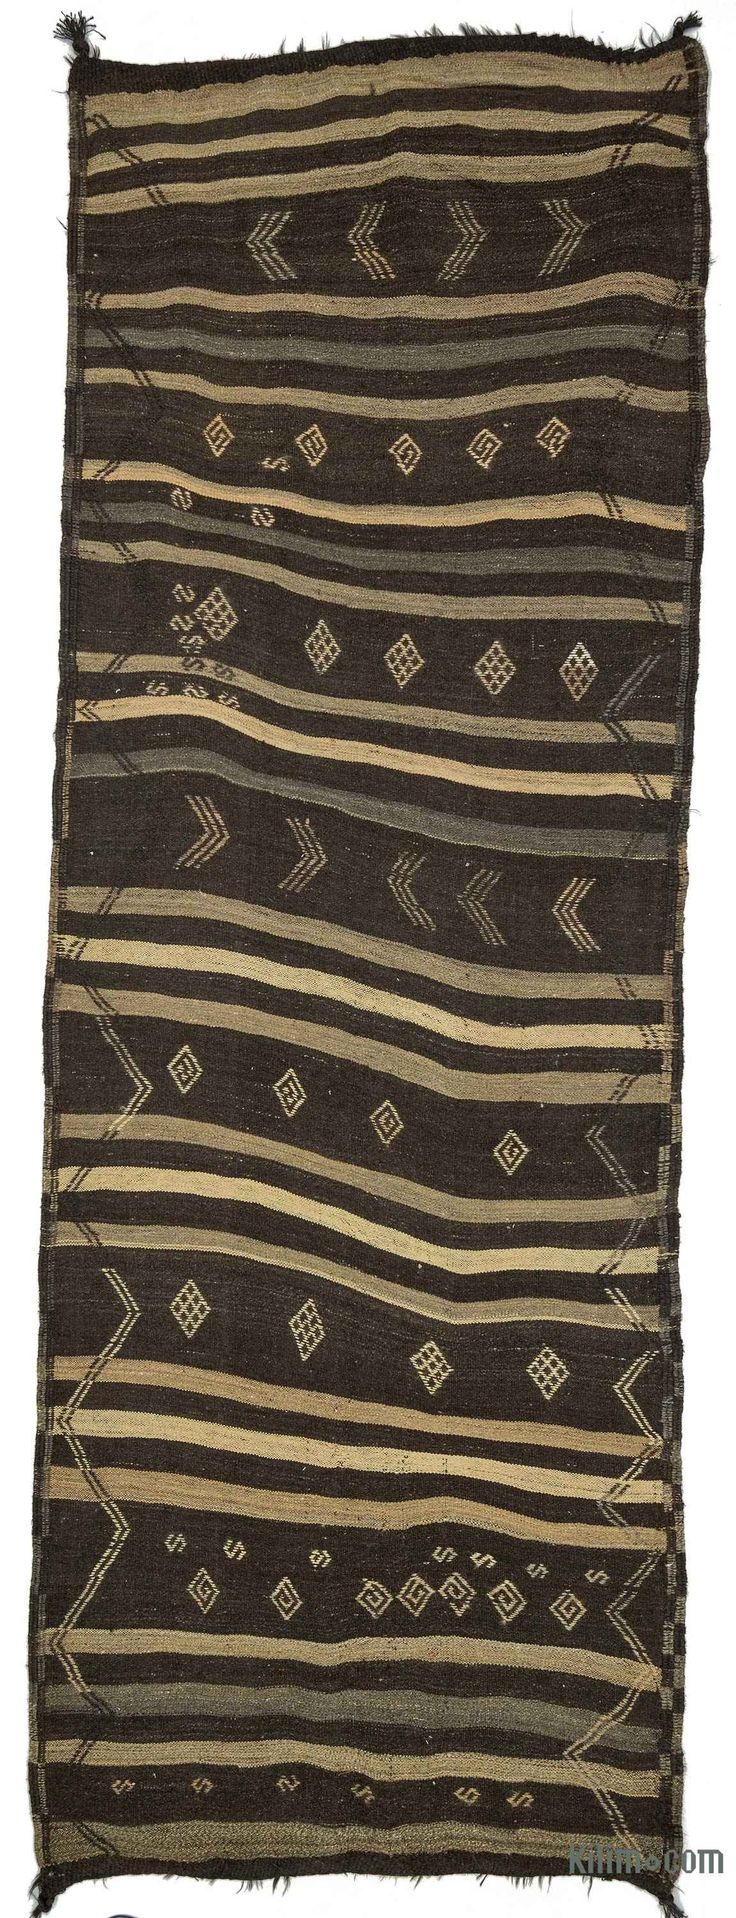 Vintage striped kilim rug hand-woven in Central Anatolia, Turkey in 1960's. This tribal rug is in very good condition. It is perfect for both bohemian and contemporary settings.